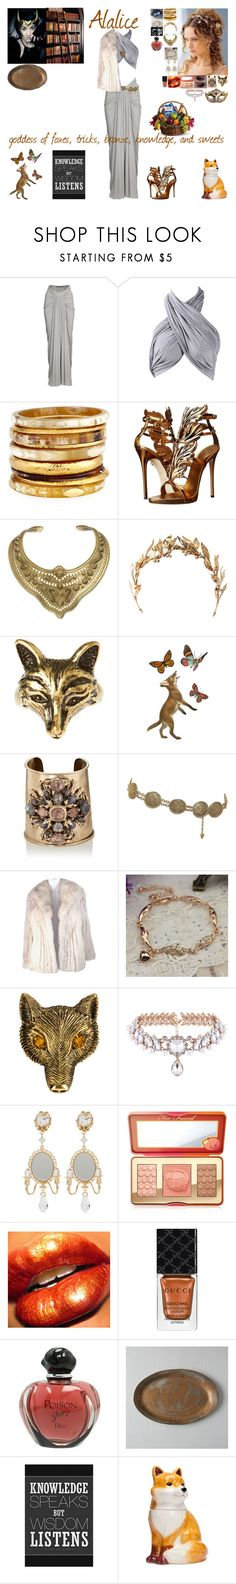 """""""rpg, goddess of foxes"""" by frostedrose ❤ liked on Polyvore featuring Rick Owens Lilies, Ashley Pittman, Giuseppe Zanotti, Aurélie Bidermann, Laurel Wreath Collection, White Leaf, Masquerade, Goossens, Chanel and Saga Furs"""